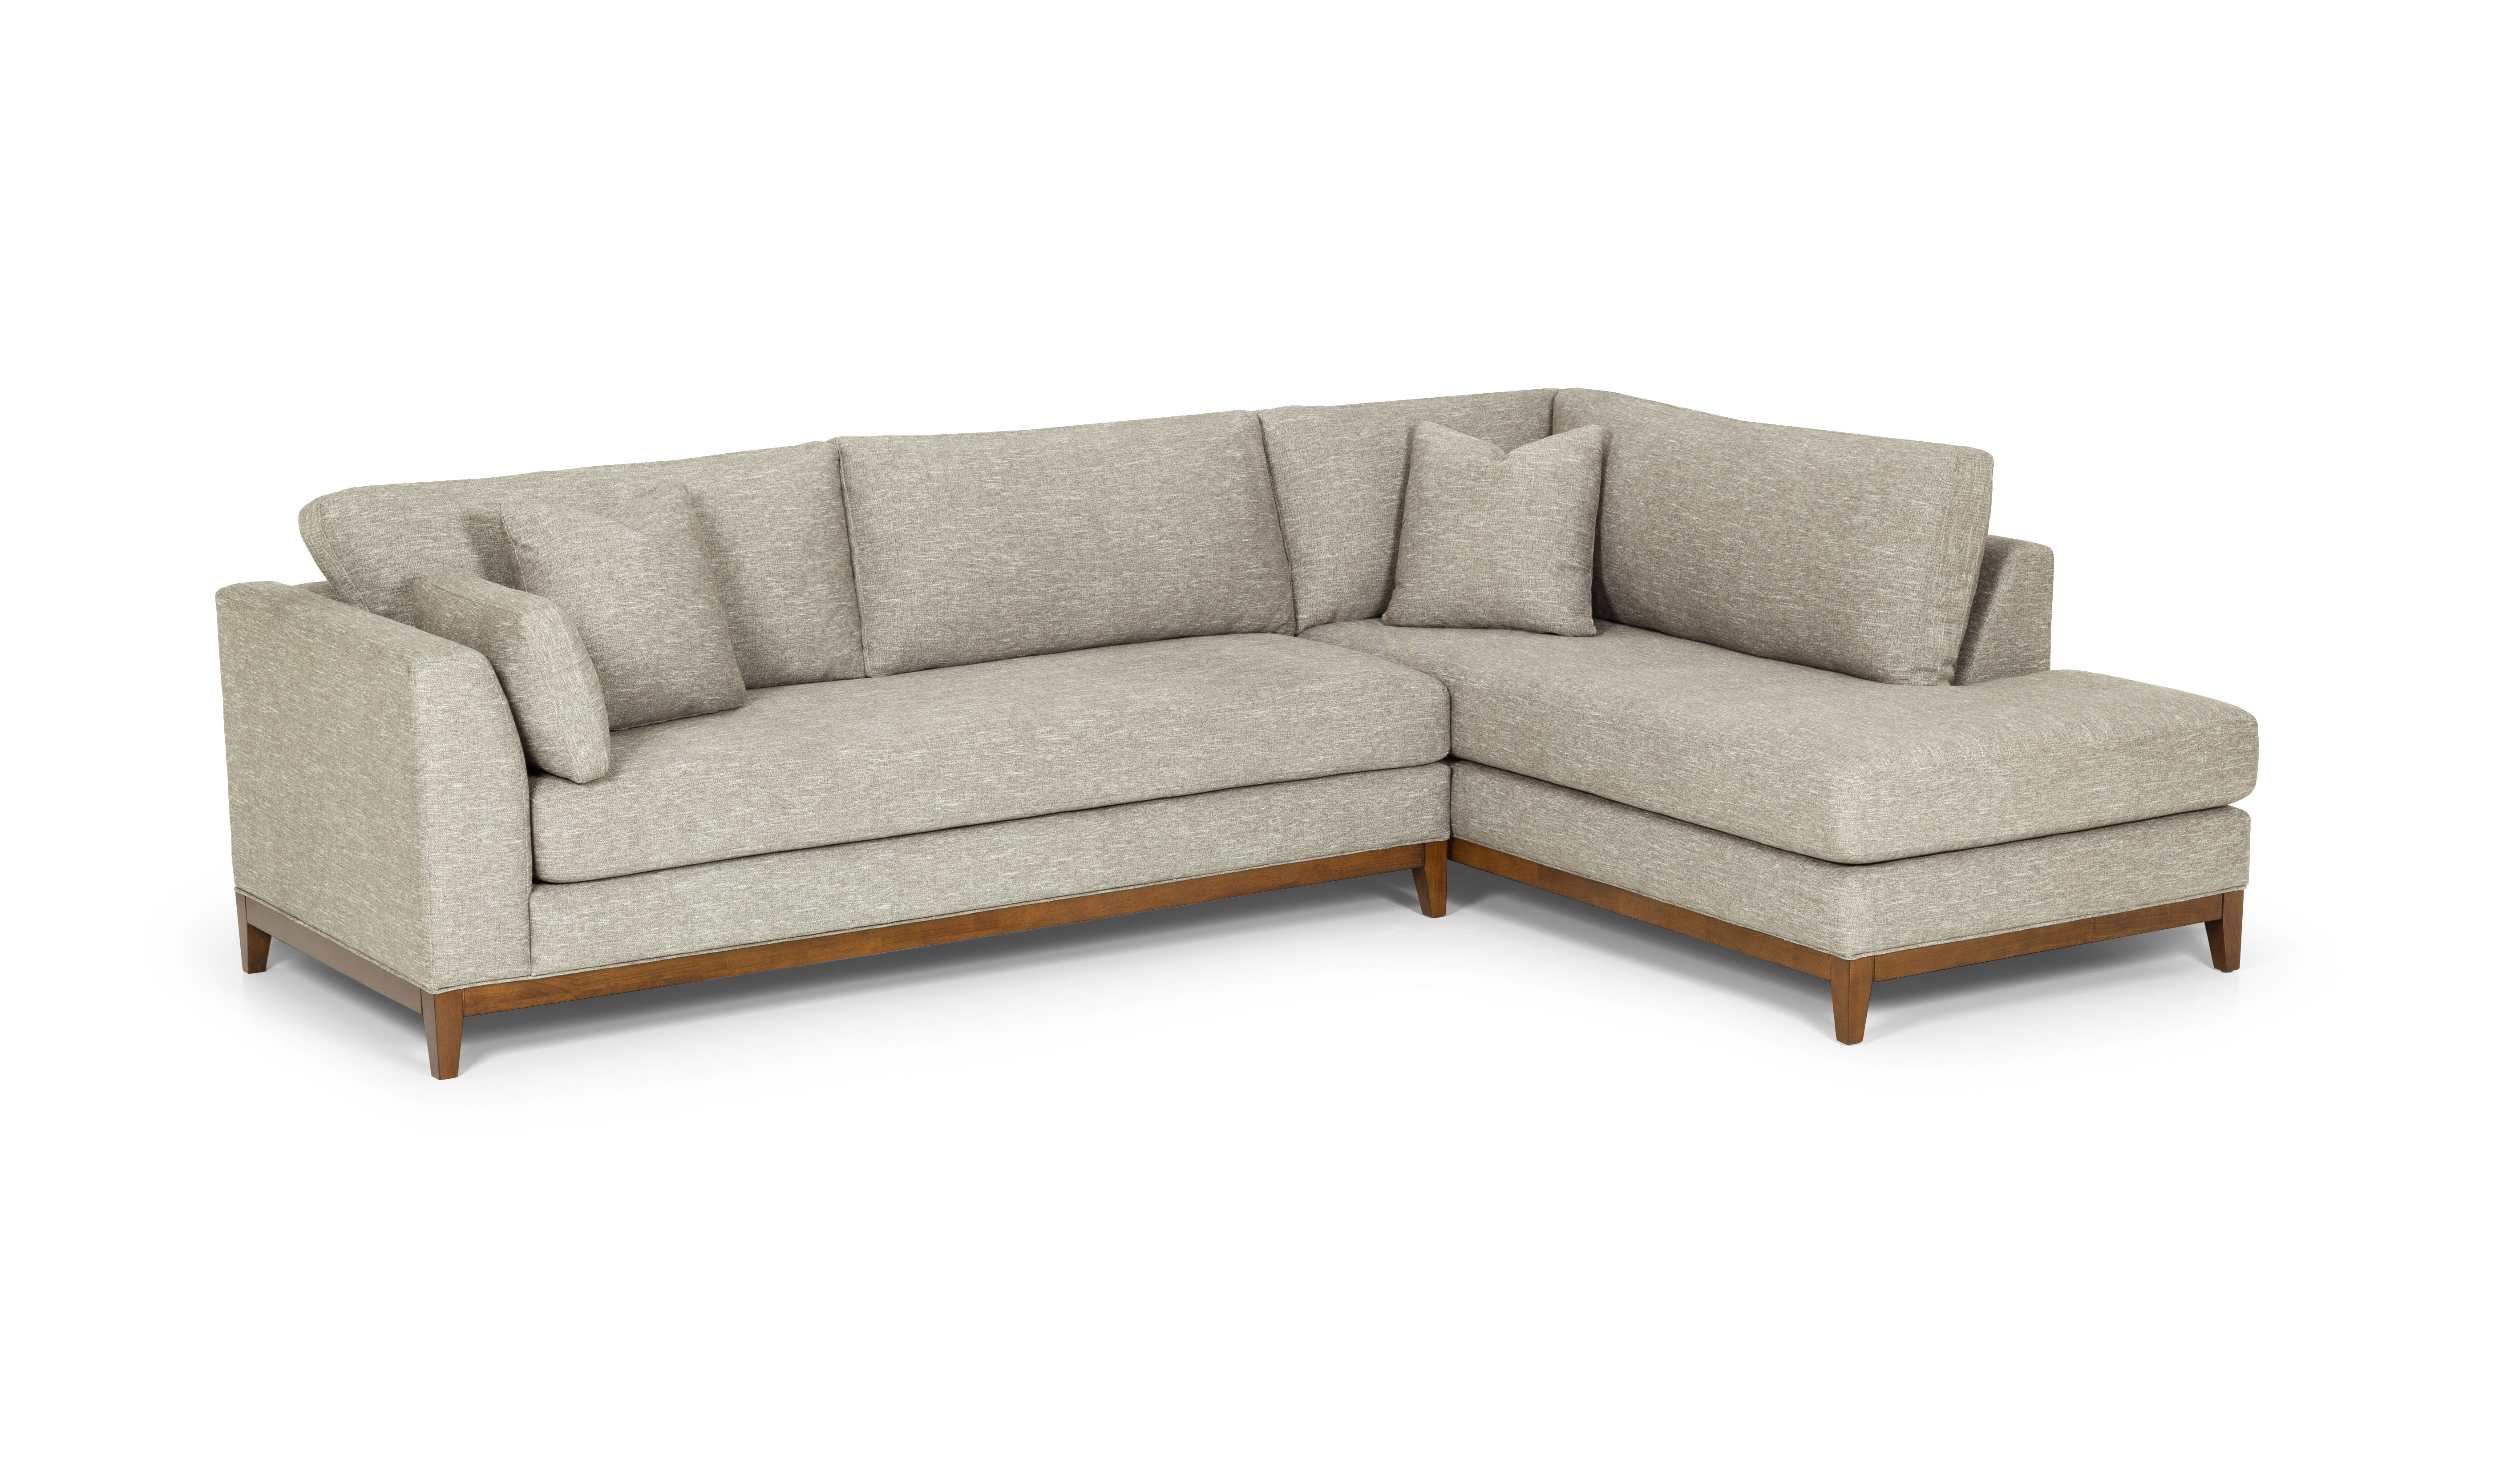 Stanton 499 Sectional